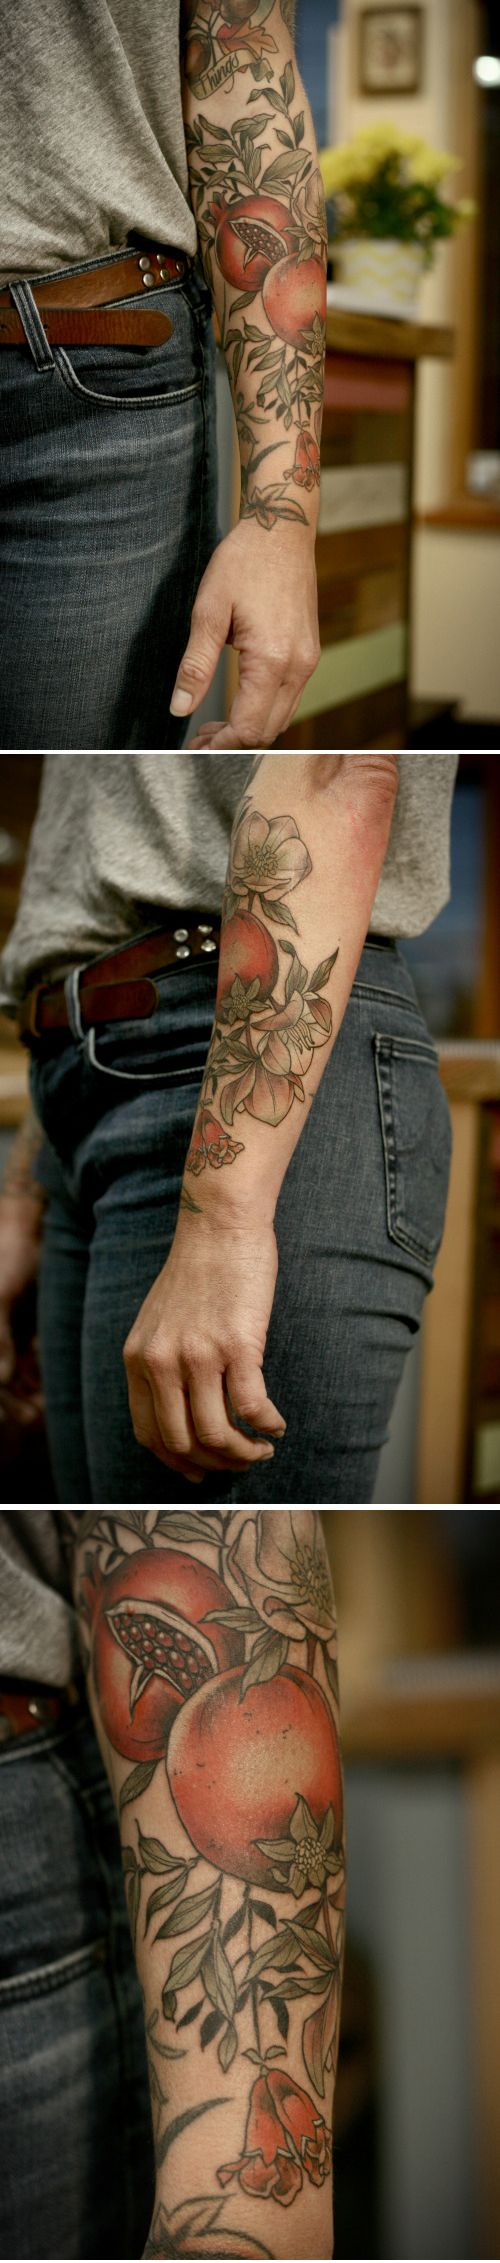 omegranates, little pomegranate flowers and hellebore. kirsten makes #tattoos